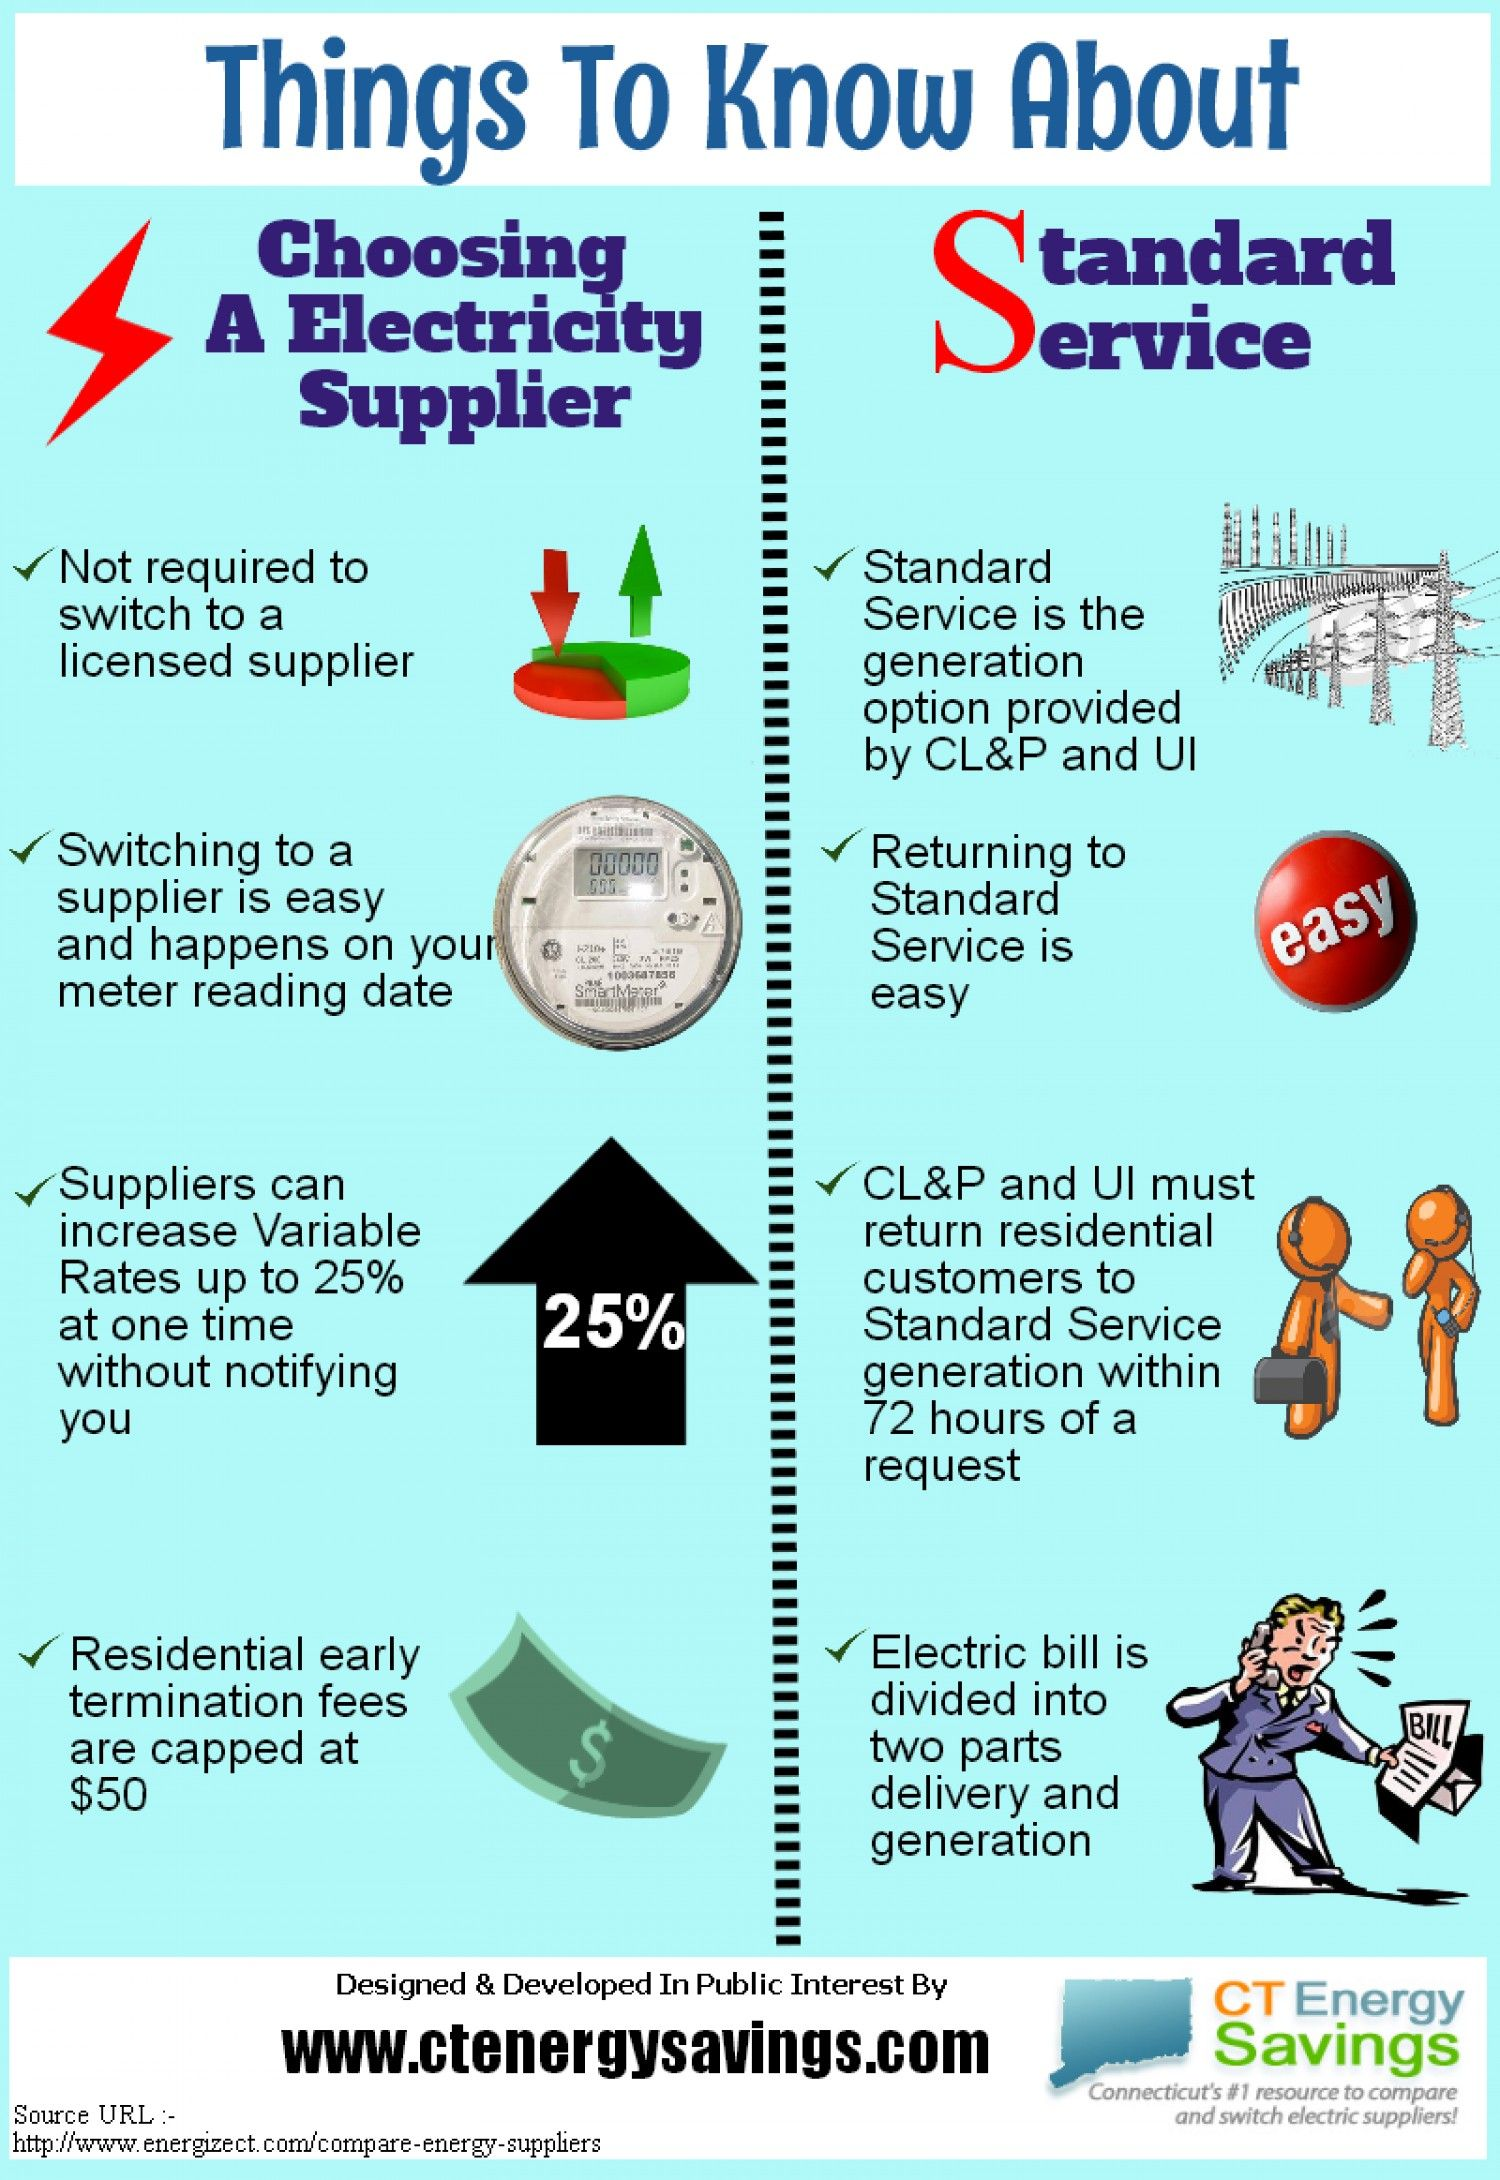 Things To Know About Choosing A Electricity Supplier and Standard ...